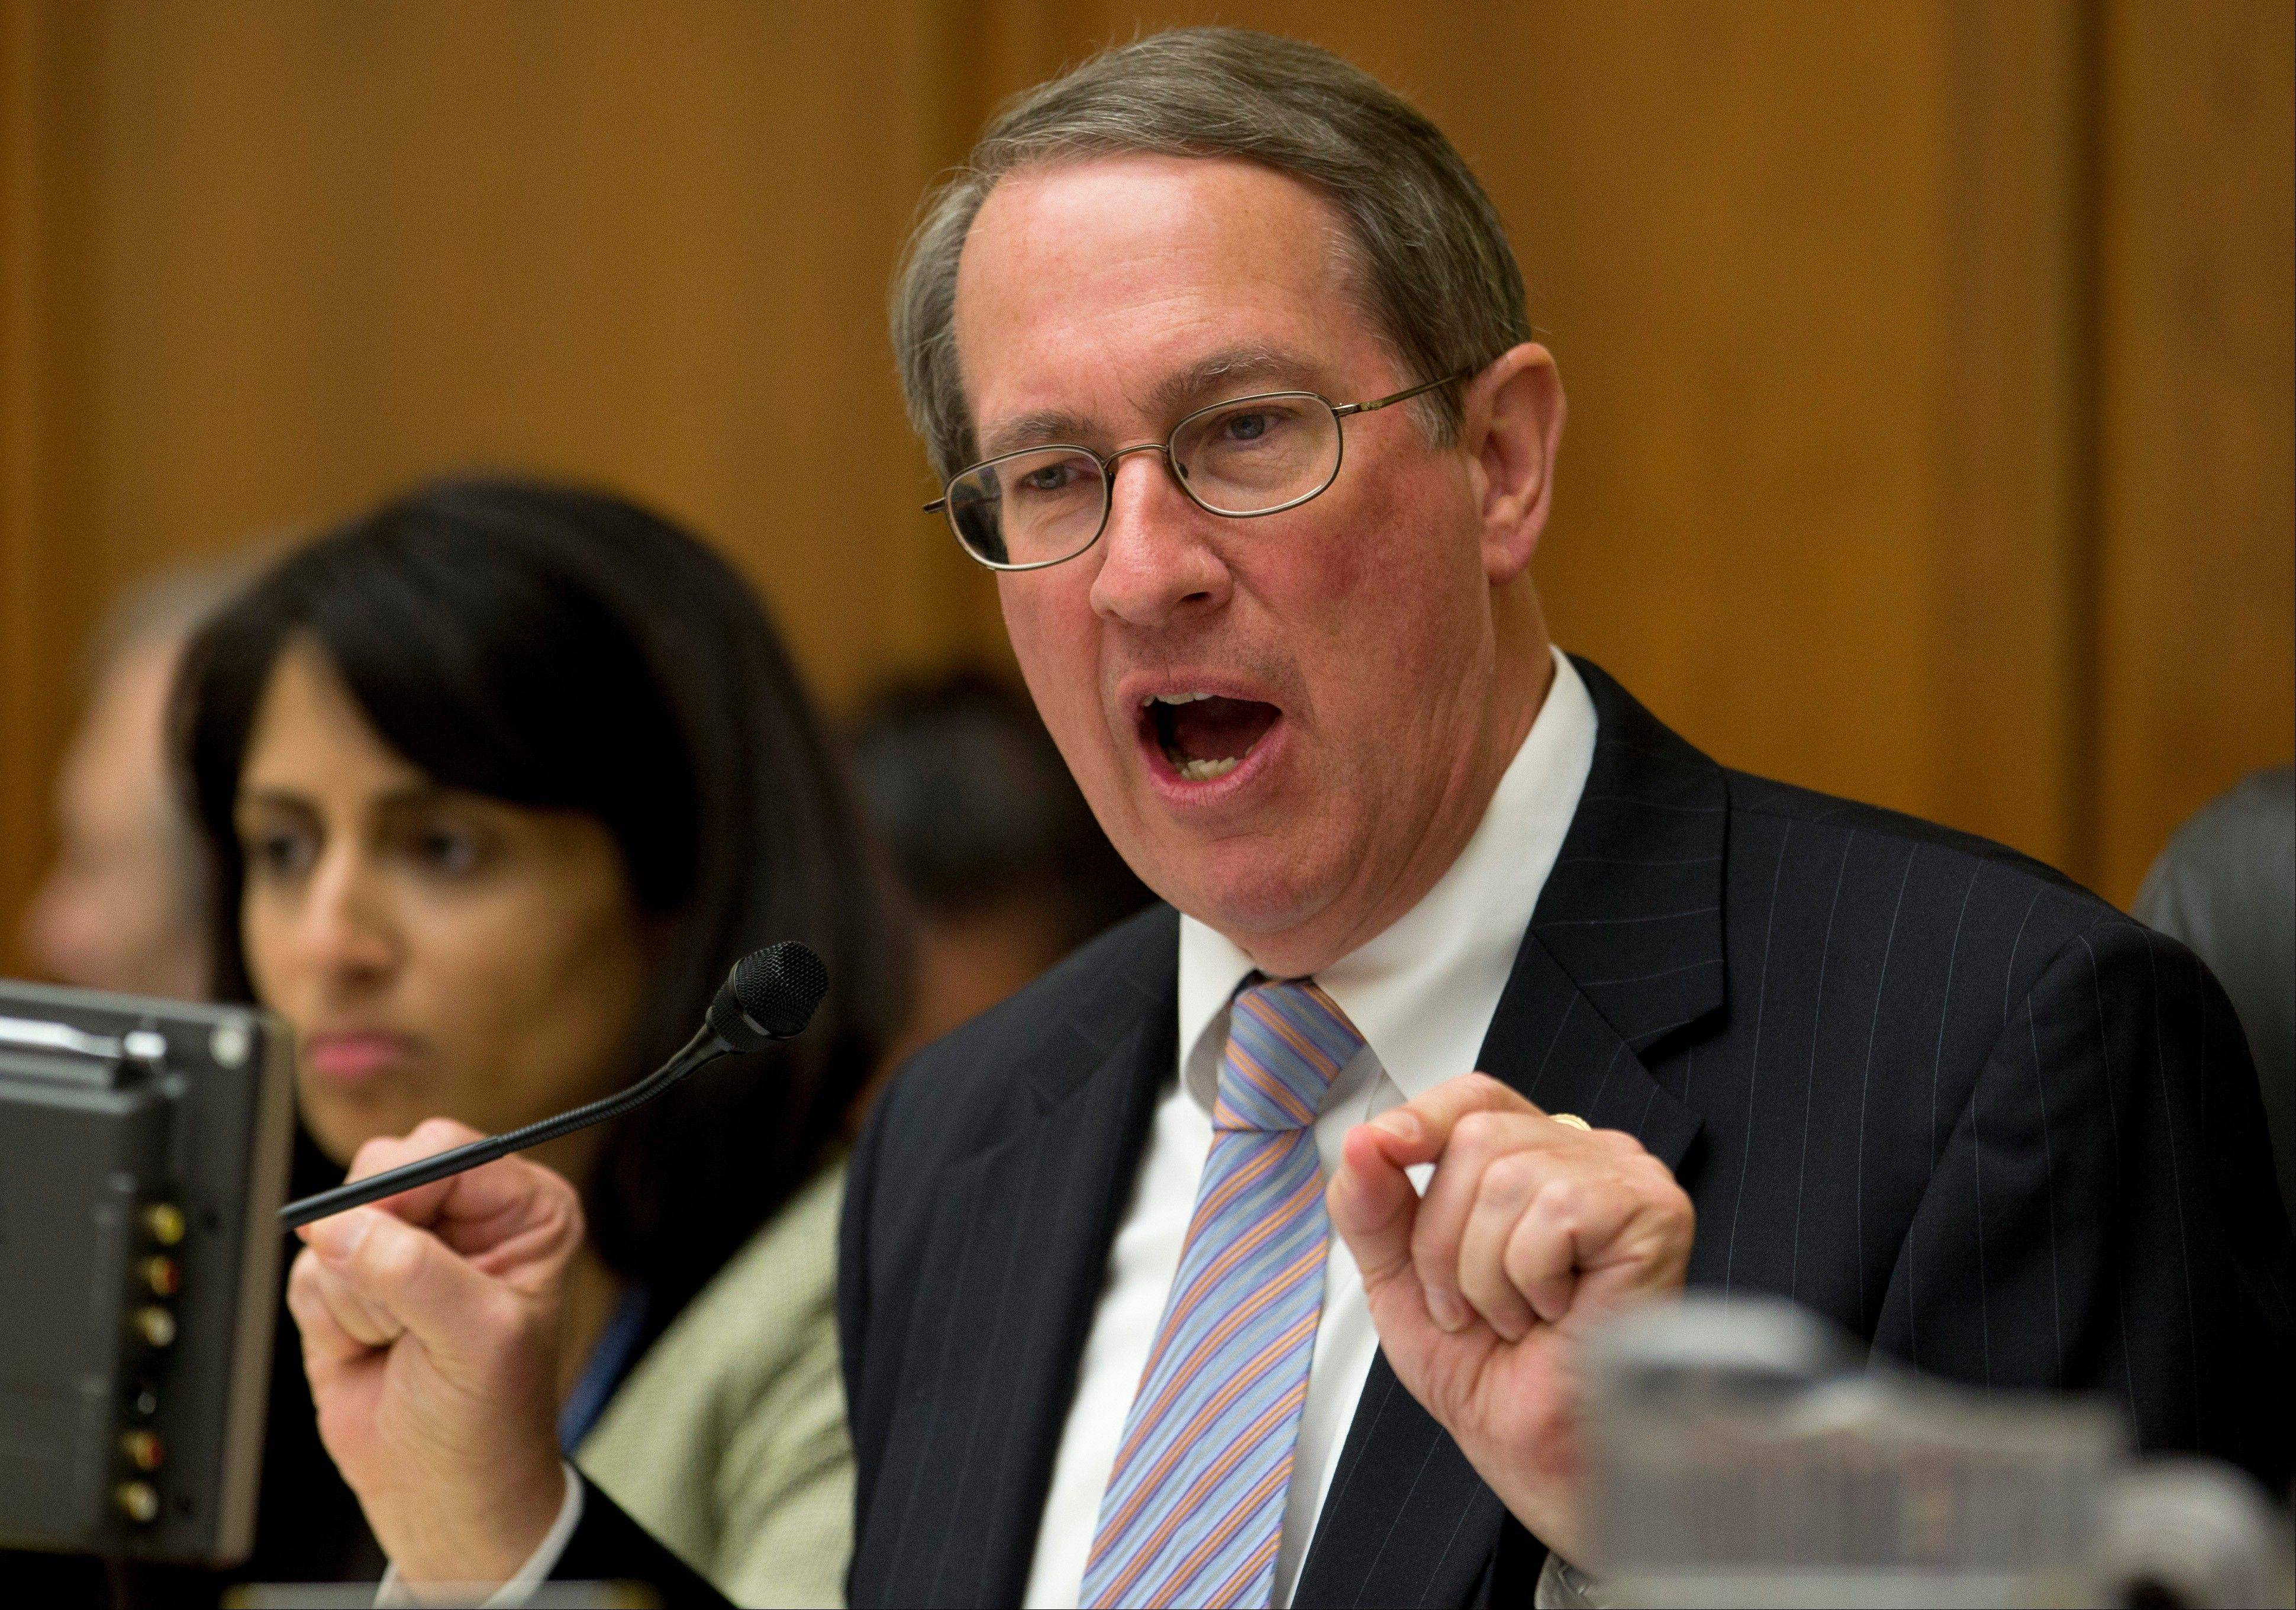 House Judiciary Committee Chairman Rep. Bob Goodlatte, R-Va., gestures as he speaks on Capitol Hill in Washington, Tuesday, June 18, 2013, during the committee's hearing to discuss the Strengthen and Fortify Enforcement Act. The committee in the Republican-led House is preparing to cast its first votes on immigration this year, on a tough enforcement-focused measure that Democrats and immigrant groups are protesting loudly.